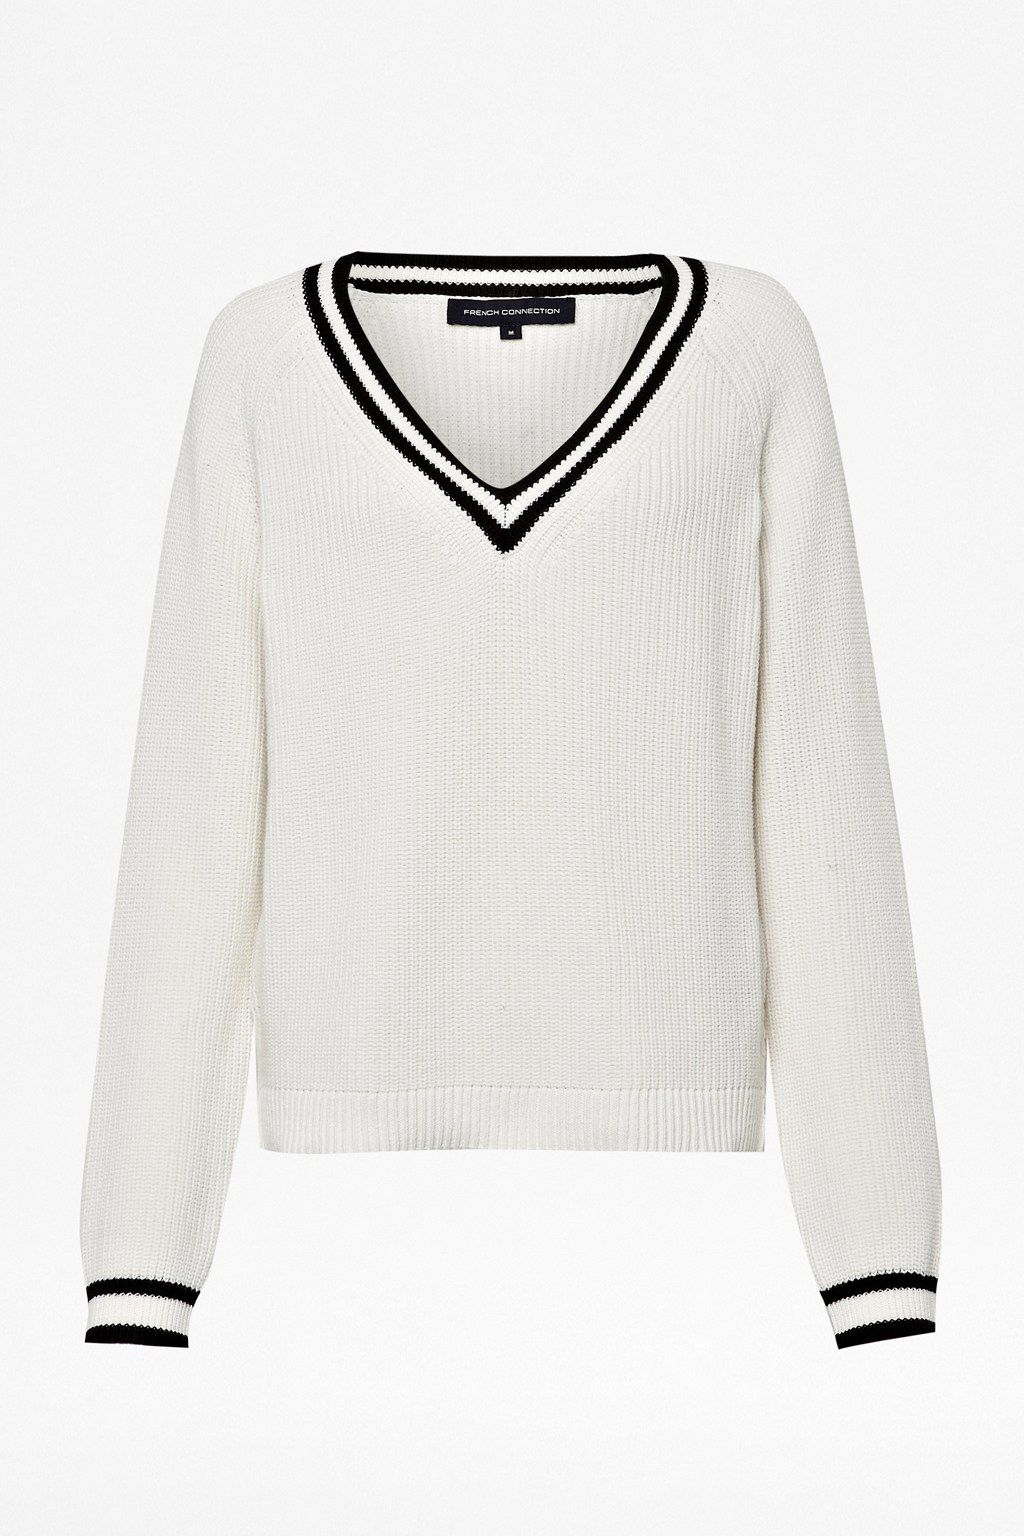 Cricket knits jumper